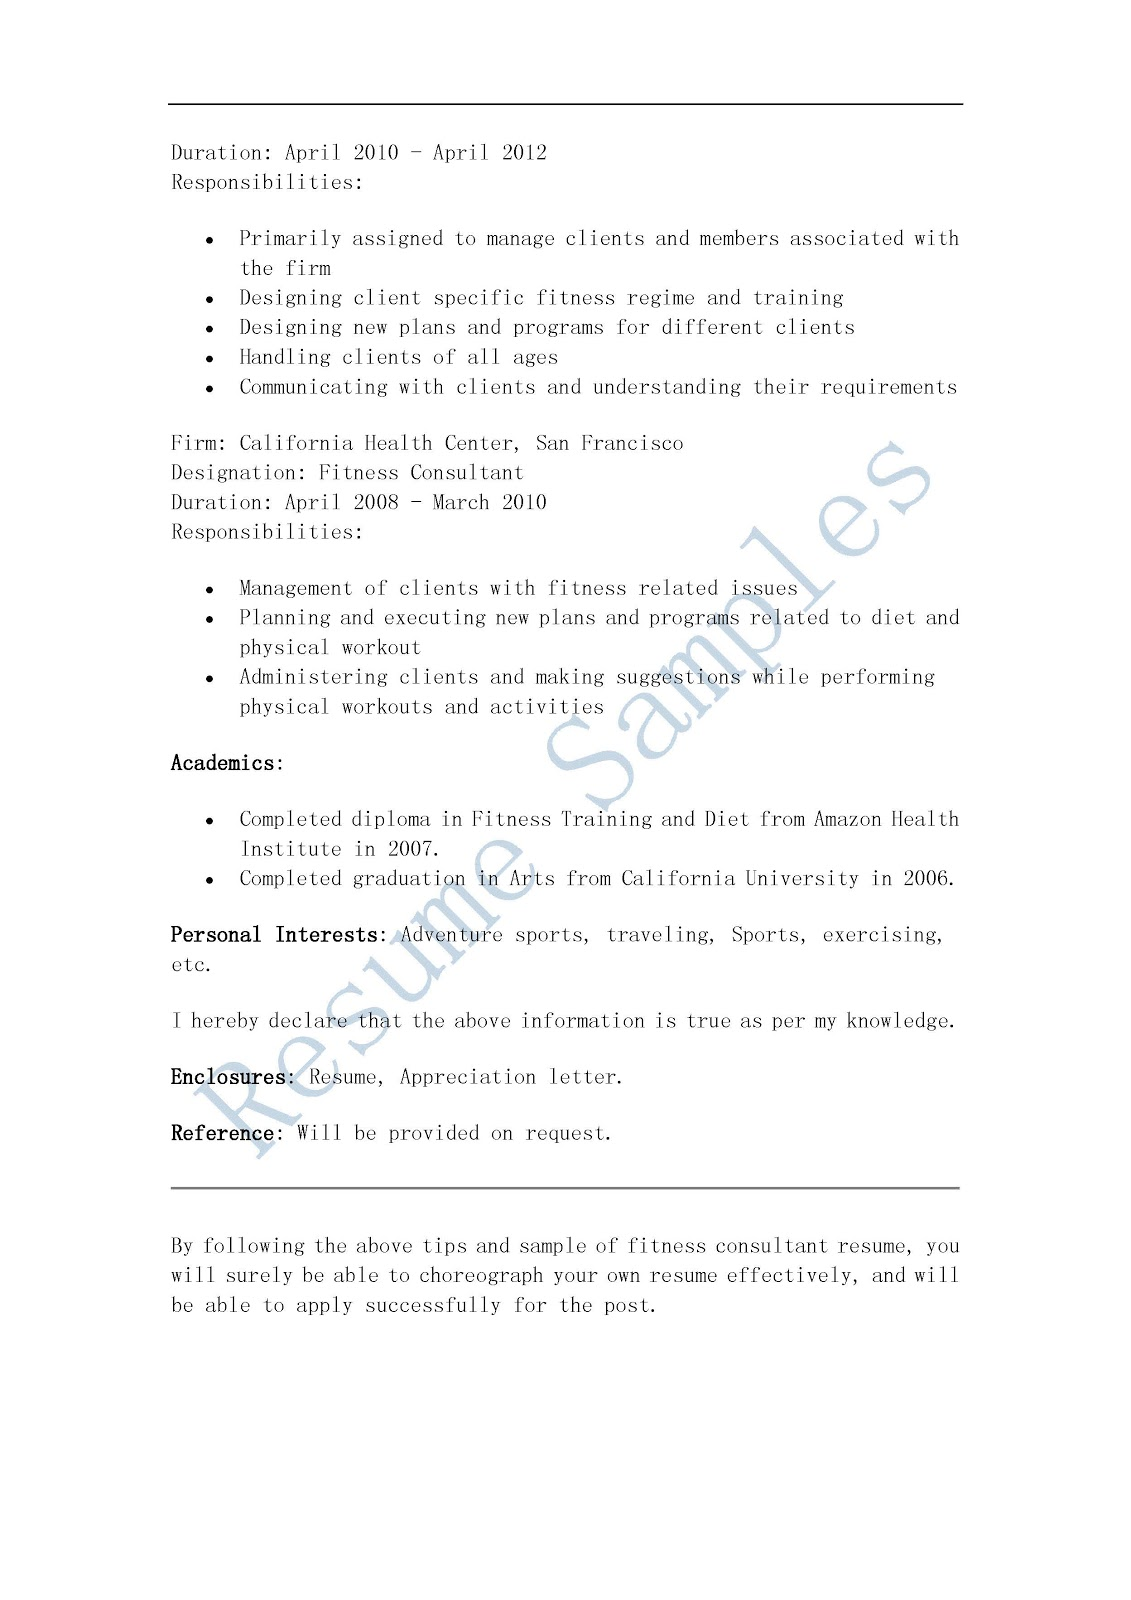 Health And Wellness Consultant Cover Letter